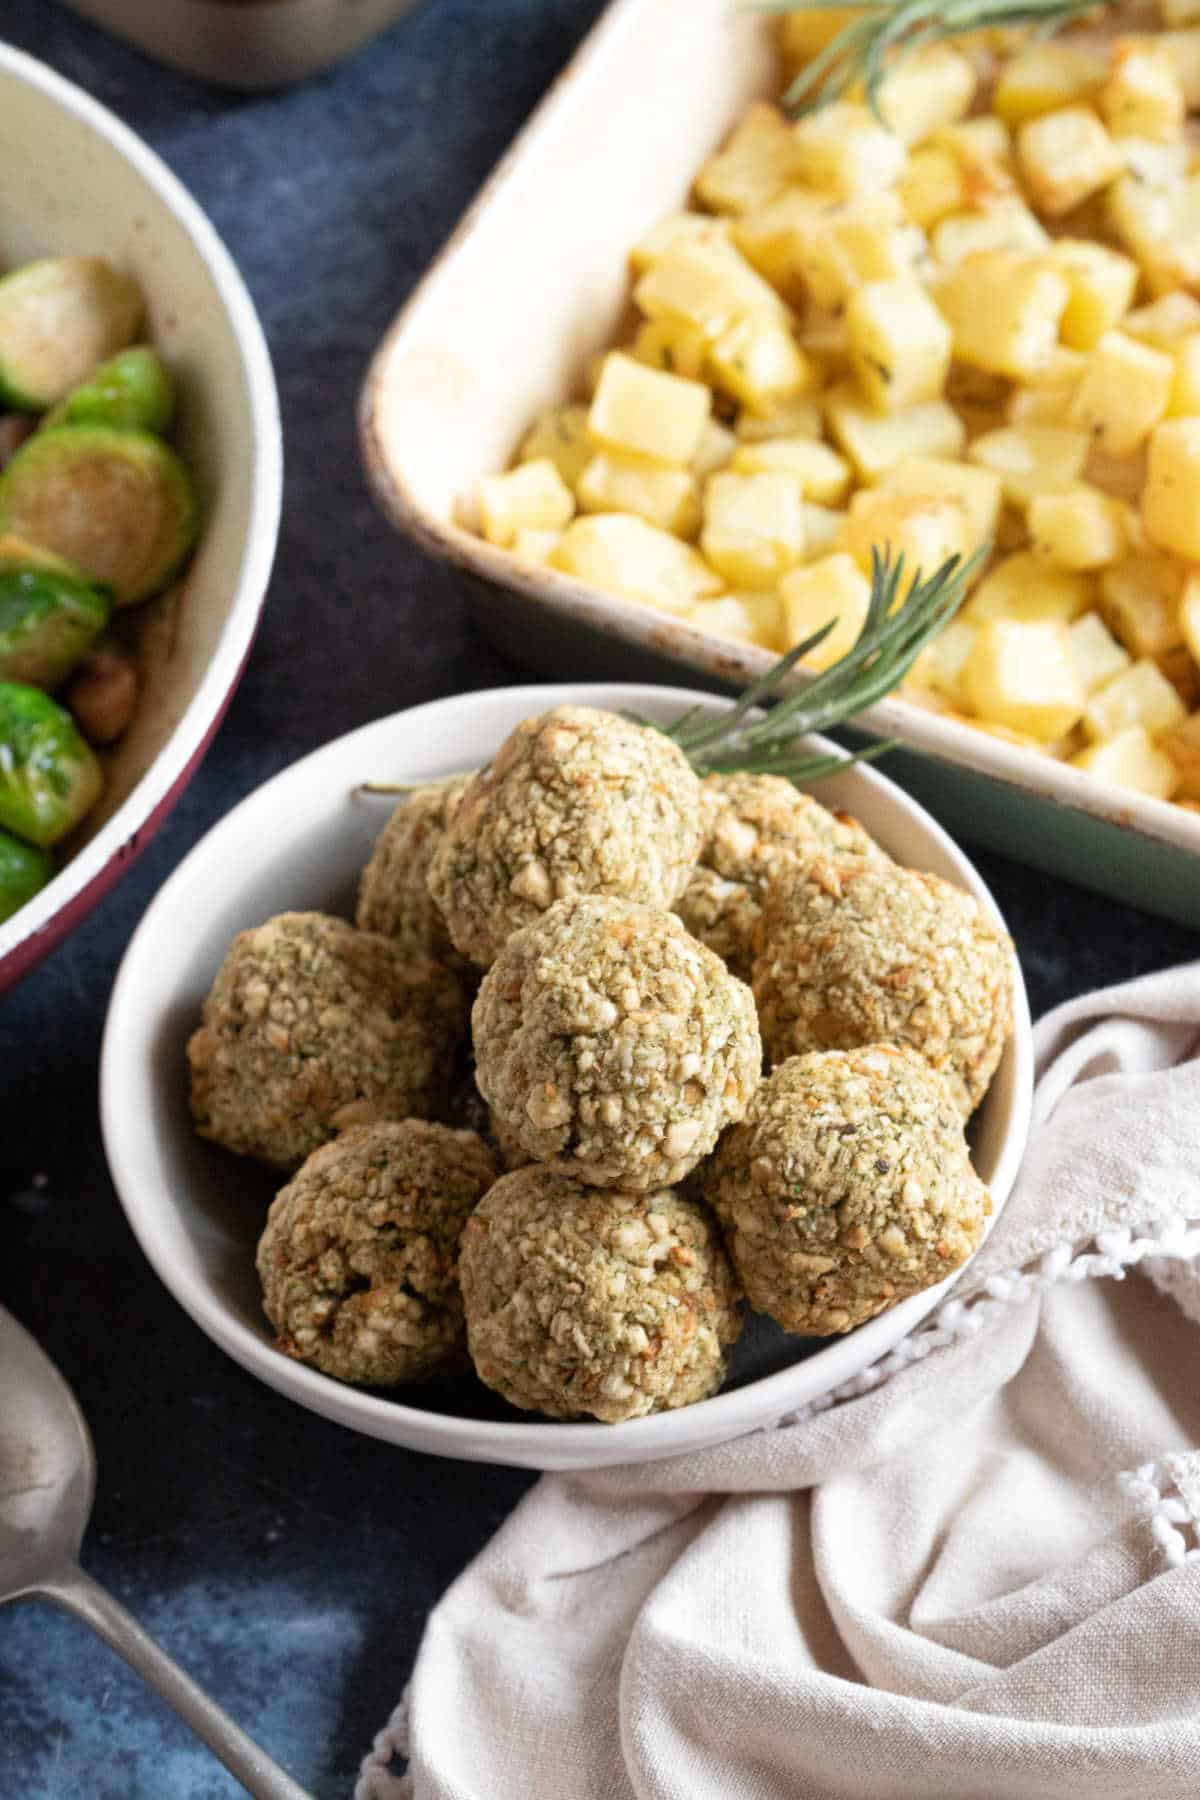 Air fryer sage and onion stuffing balls  with potatoes and brussels sprouts.